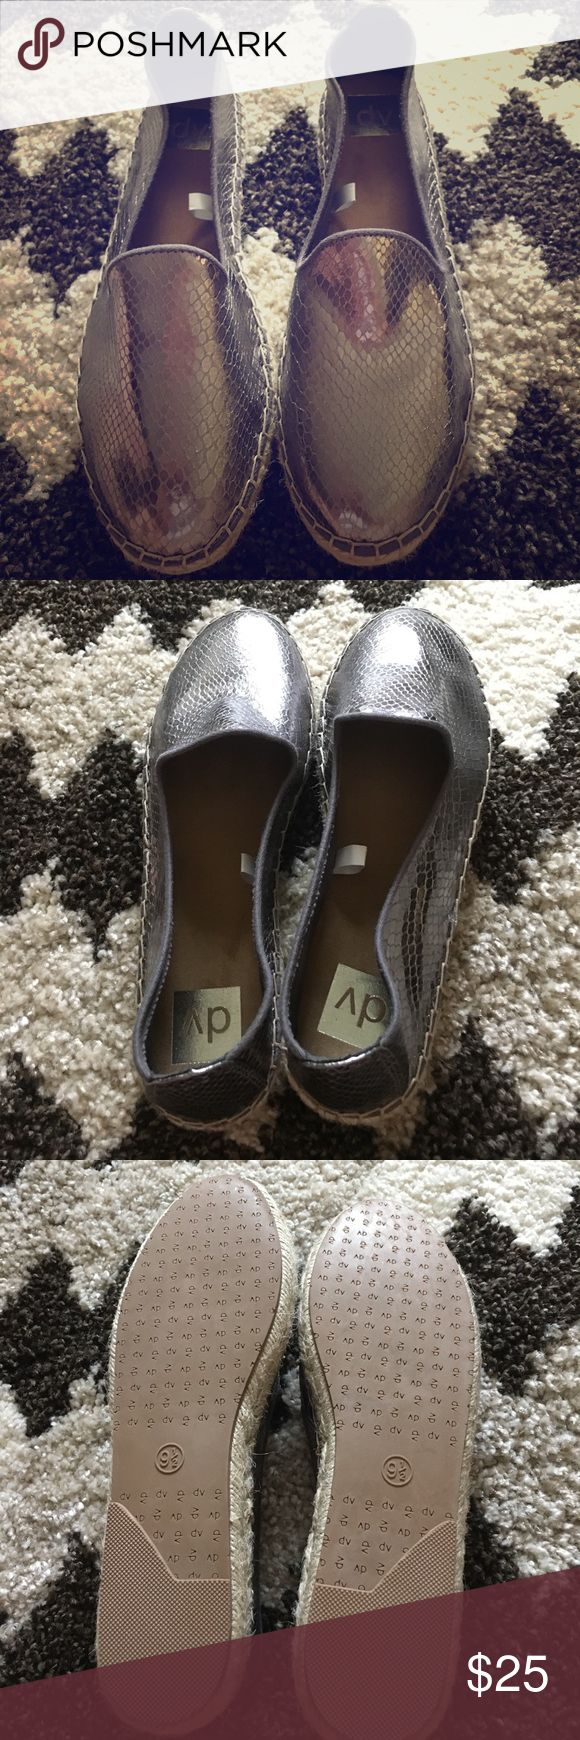 Women's size 9 1/2 espadrilles Brand new never worn (no tags) silver espadrilles by DV Target Shoes Espadrilles